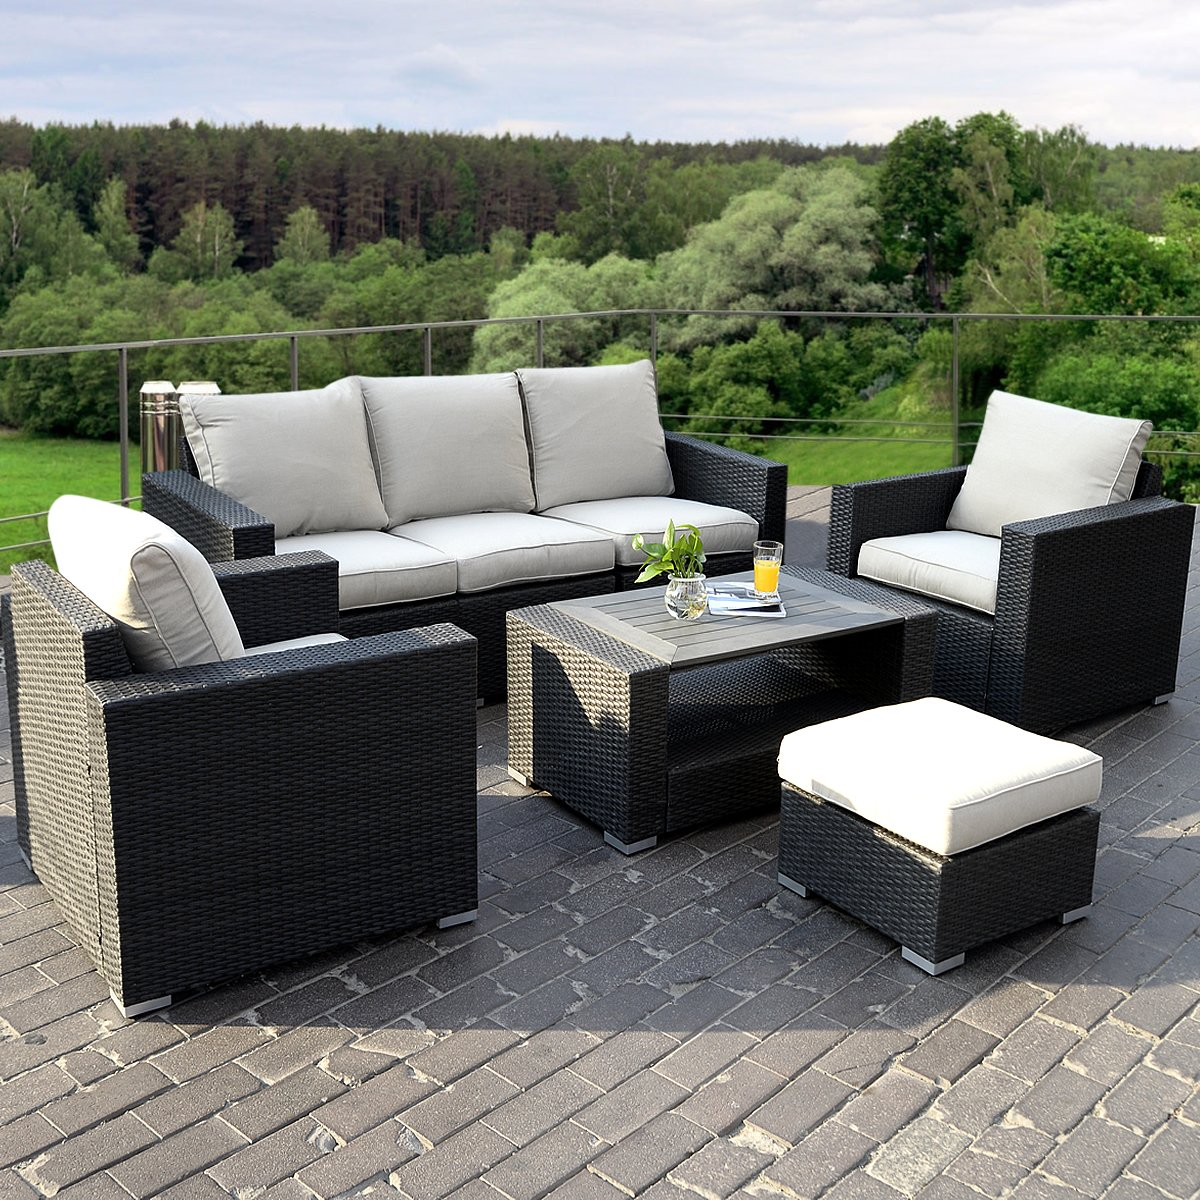 17tlg lounge set gartenm bel loungem bel polyratten. Black Bedroom Furniture Sets. Home Design Ideas